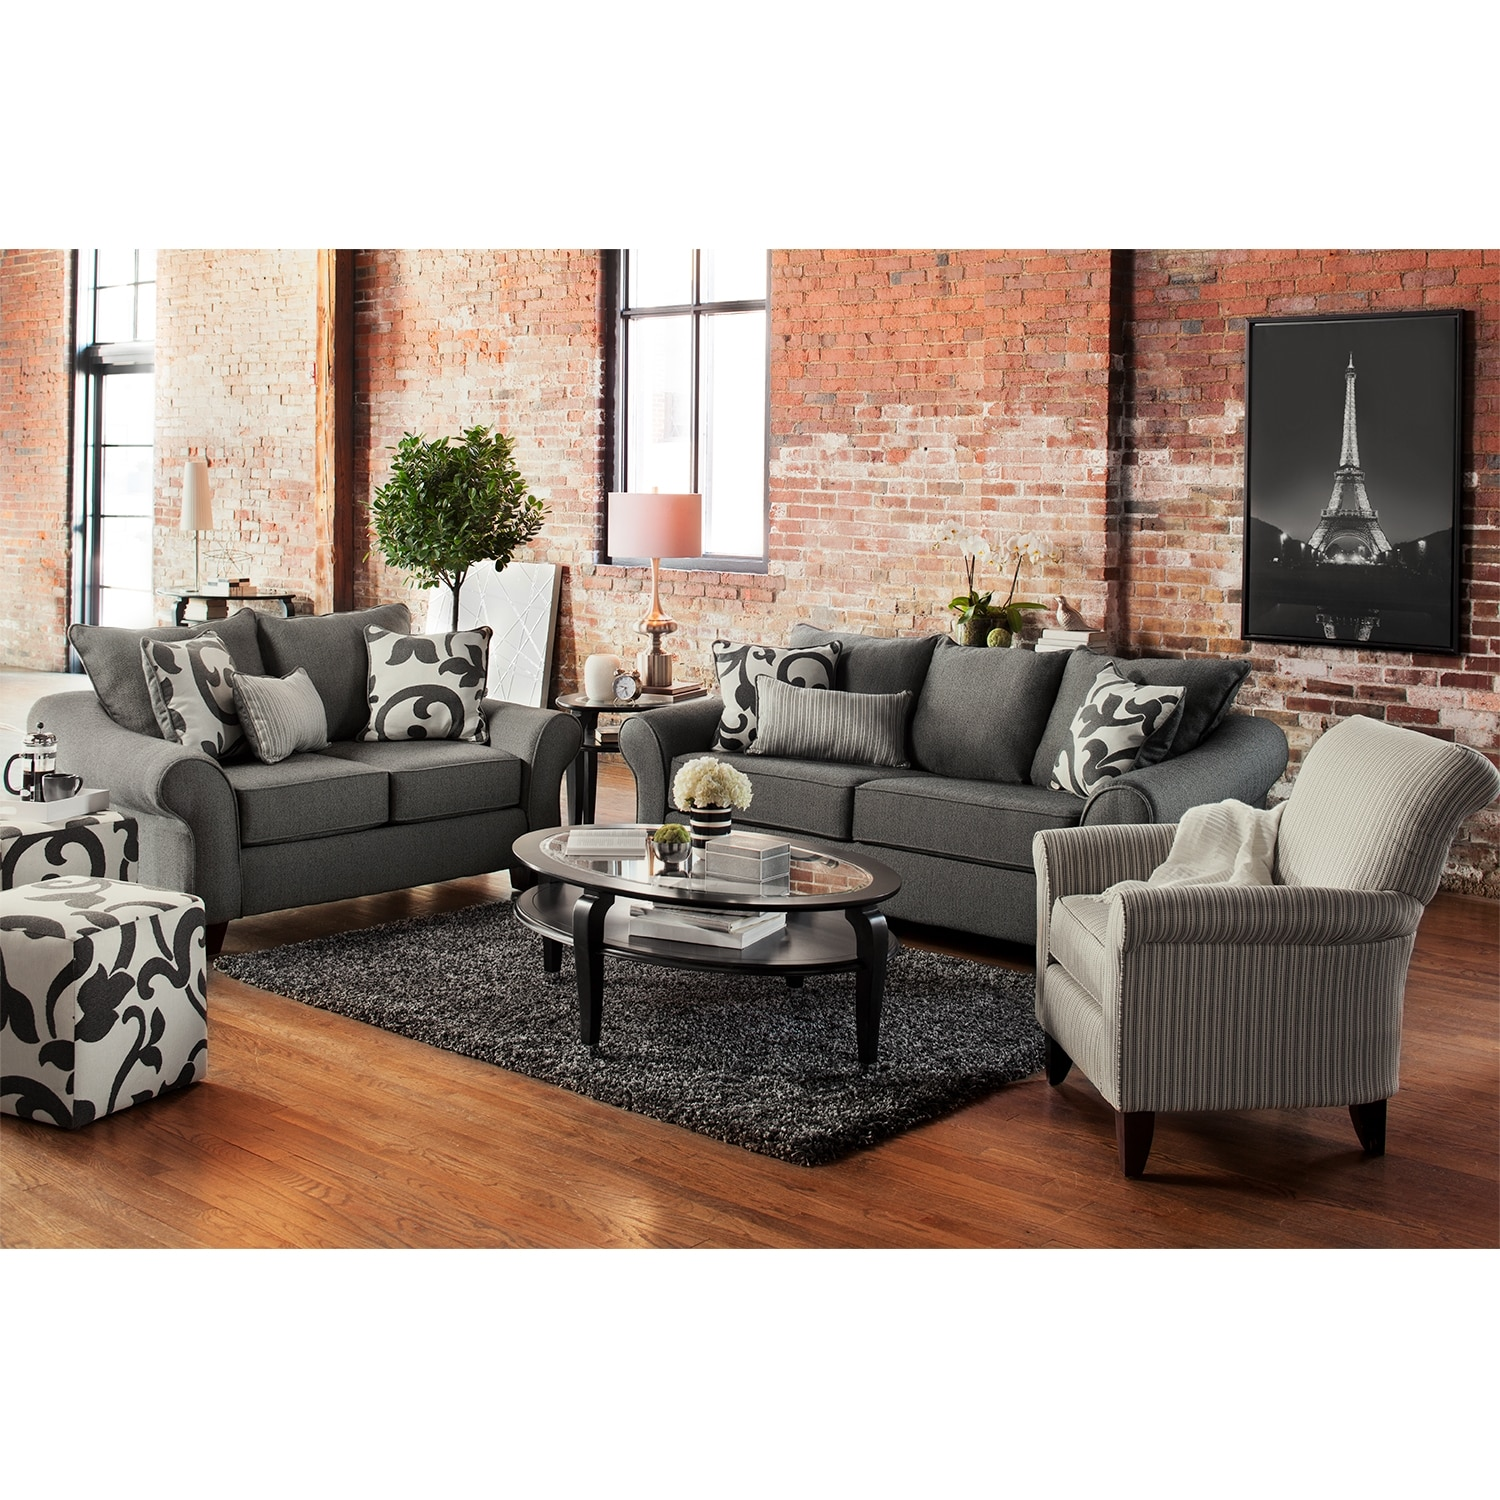 Colette sofa gray value city furniture Living room furniture images